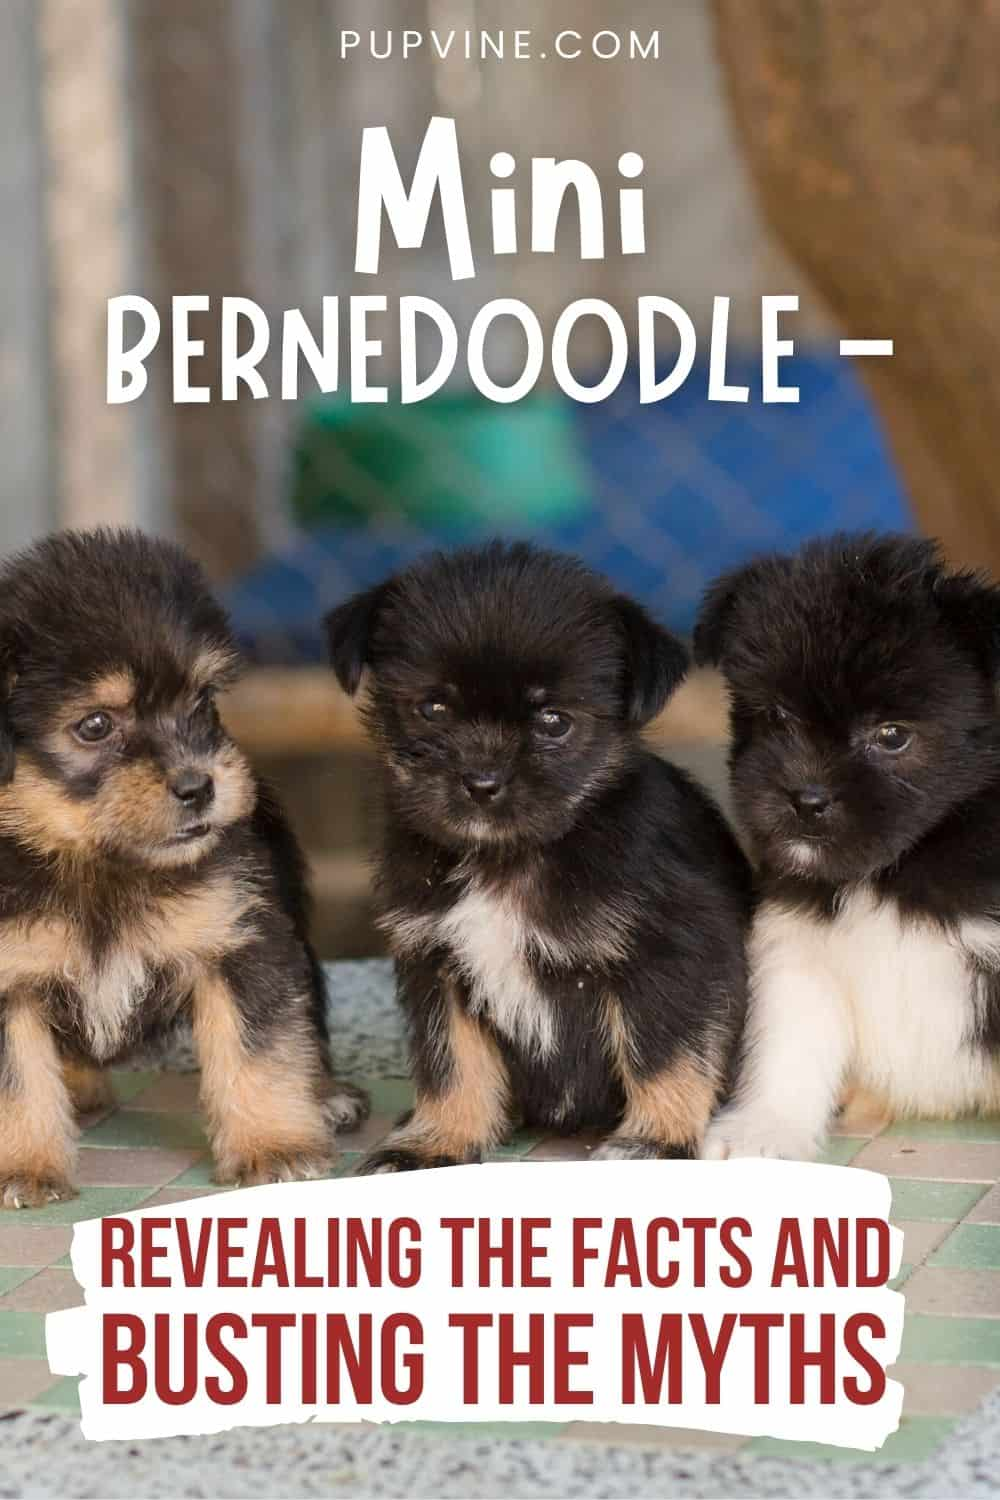 Mini Bernedoodle - Revealing The Facts And Busting The Myths